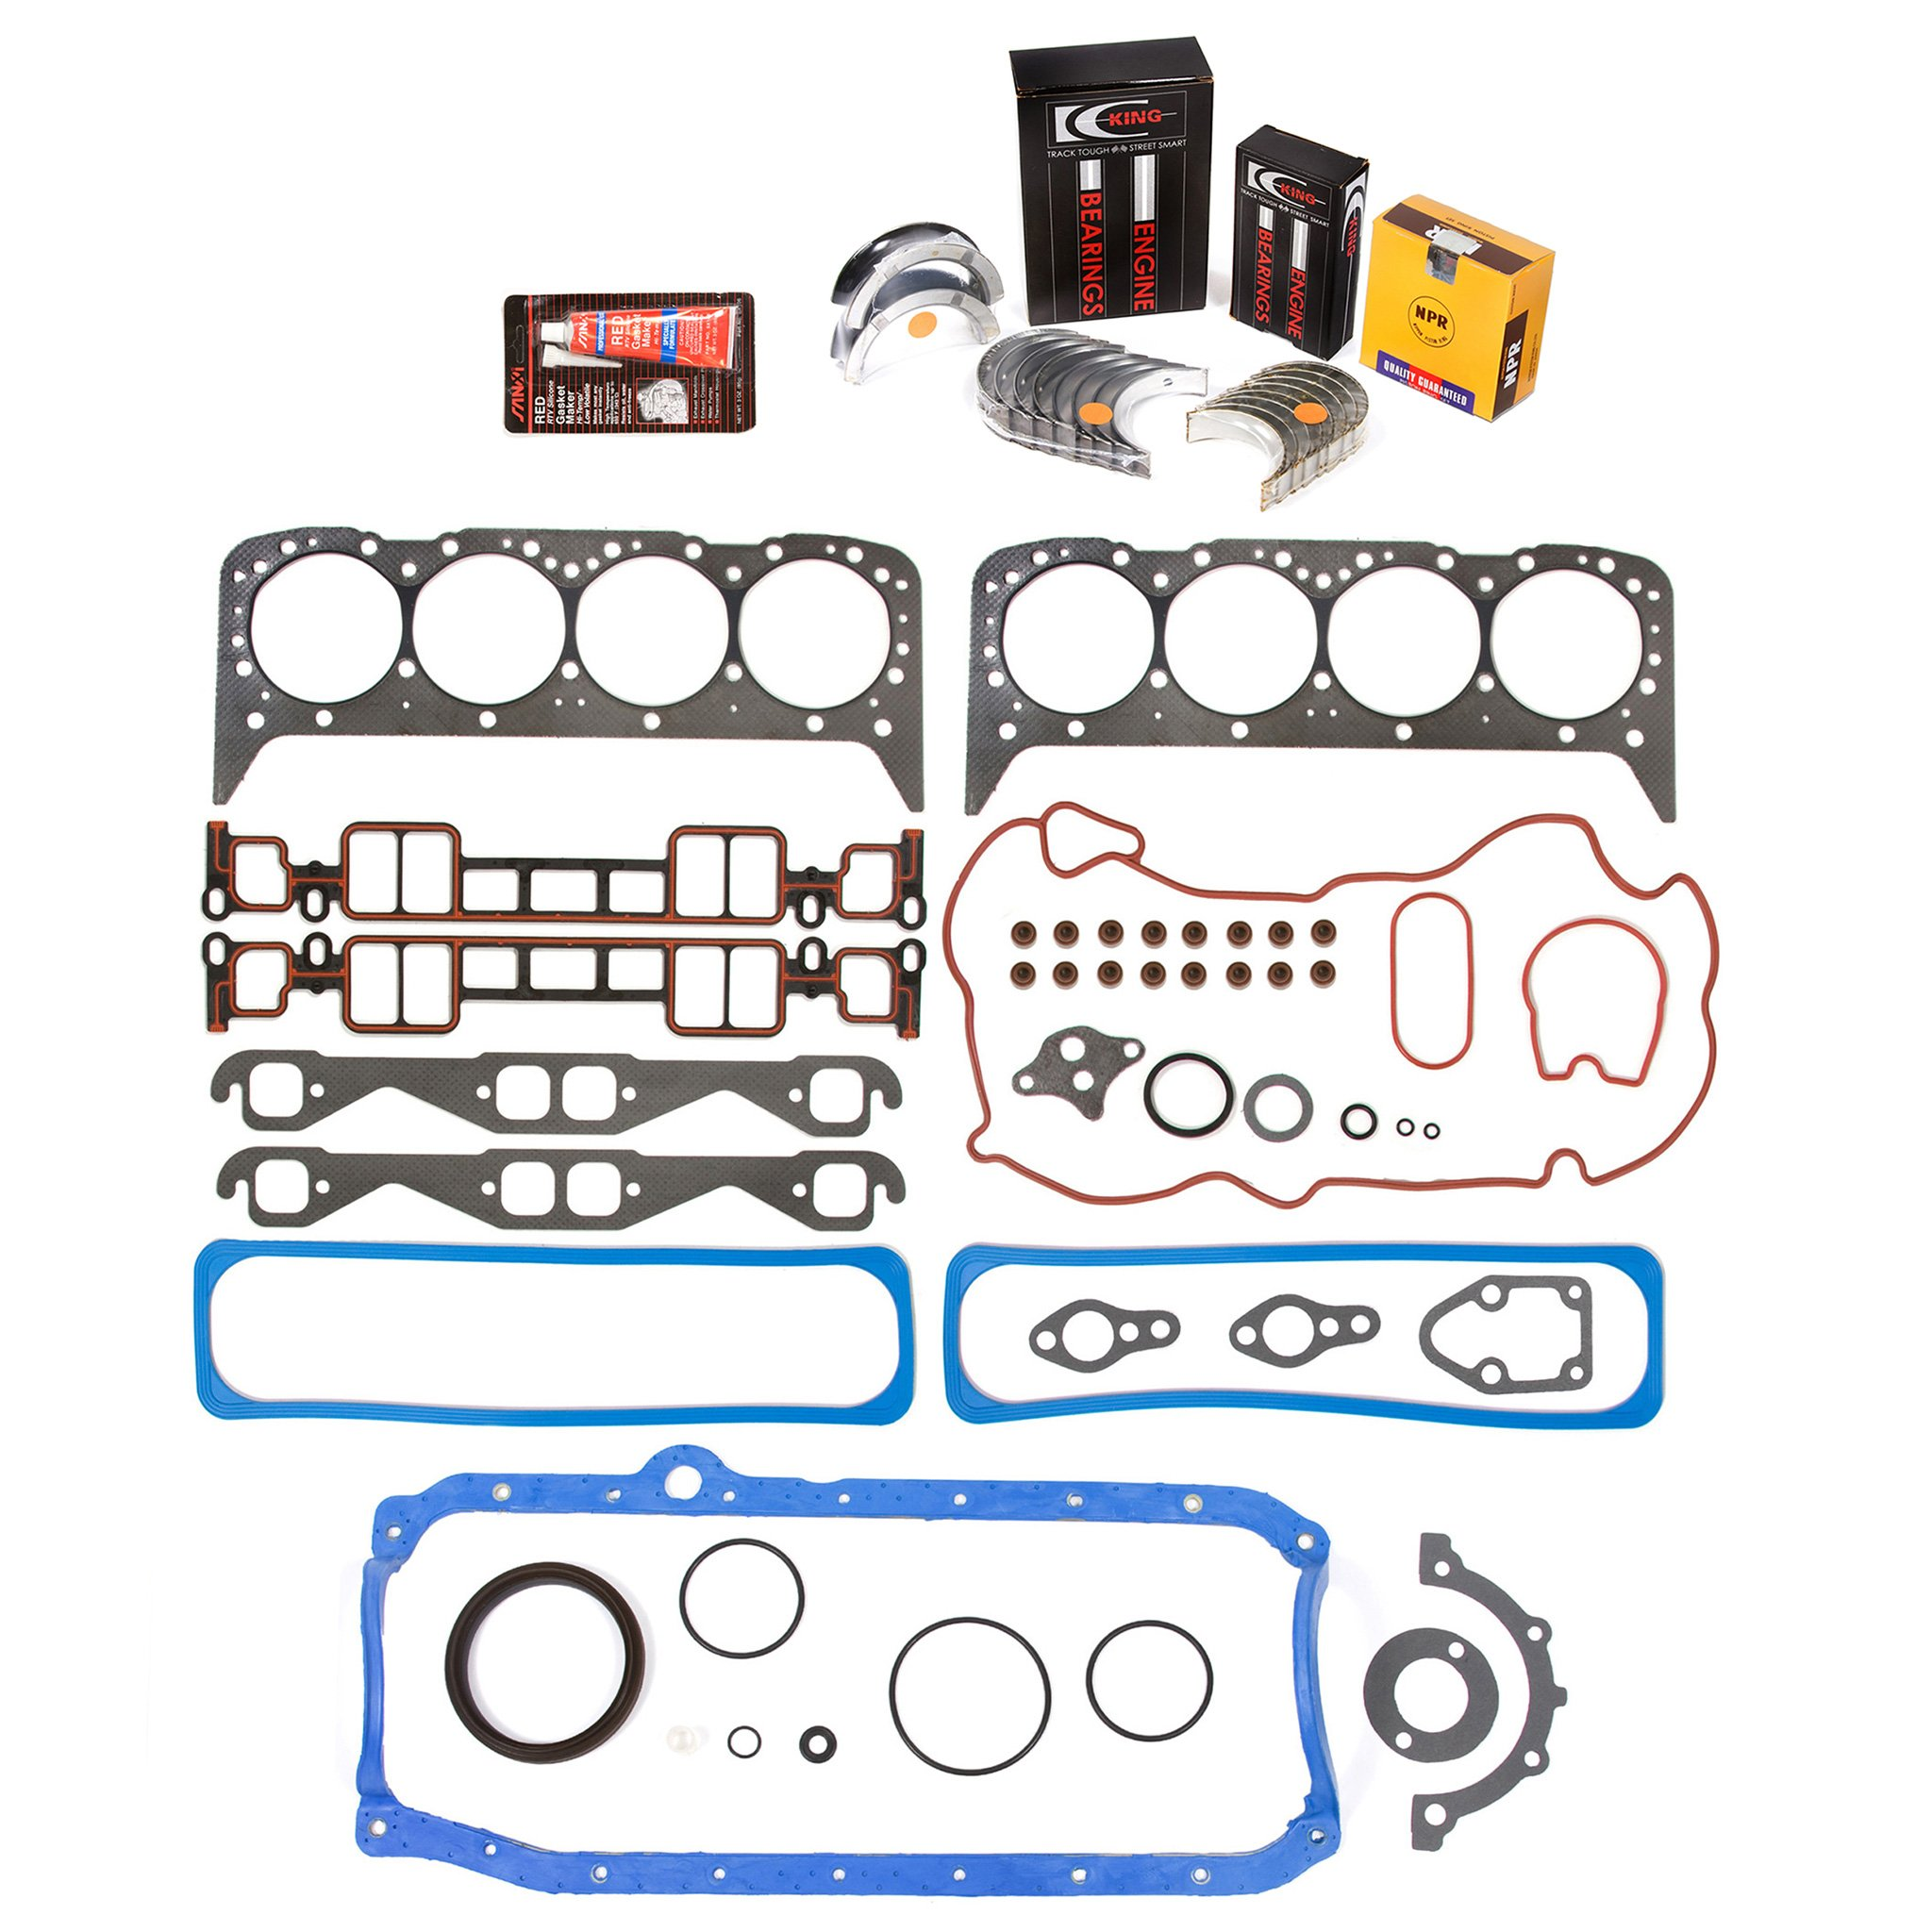 Evergreen Engine Rering Kit FSBRR8-10116 96-02 Cadillac Chevrolet GMC VORTEC 5.7 OHV VIN R Full Gasket Set, 0.25mm / 0.010'' Oversize Main Rod Bearings, 0.50mm / 0.020'' Oversize Piston Rings by Evergreen Parts And Components